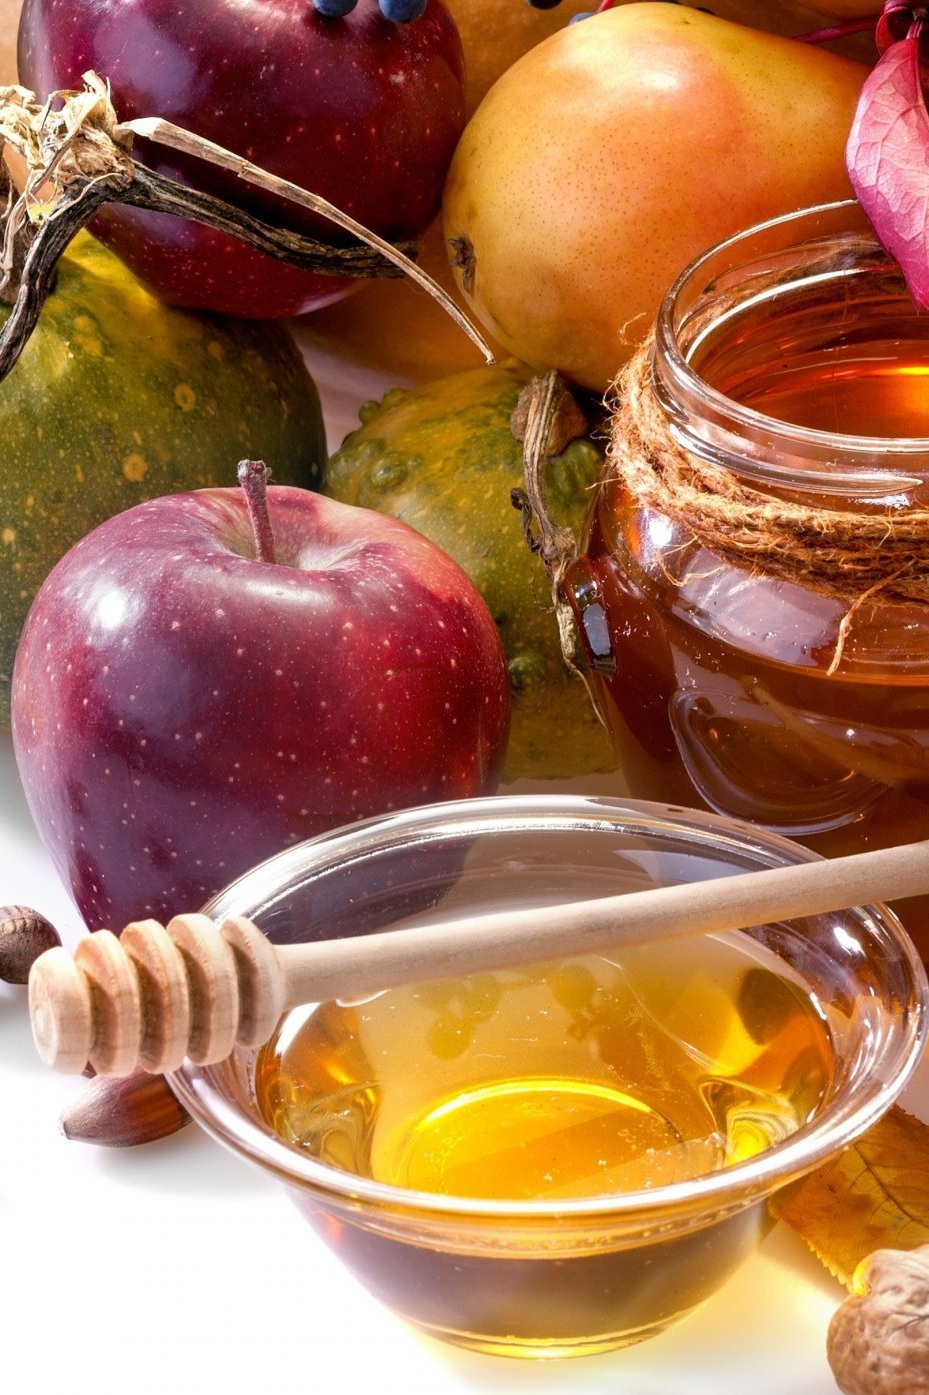 Honey - Healthy for you. Vital to the food cycle.